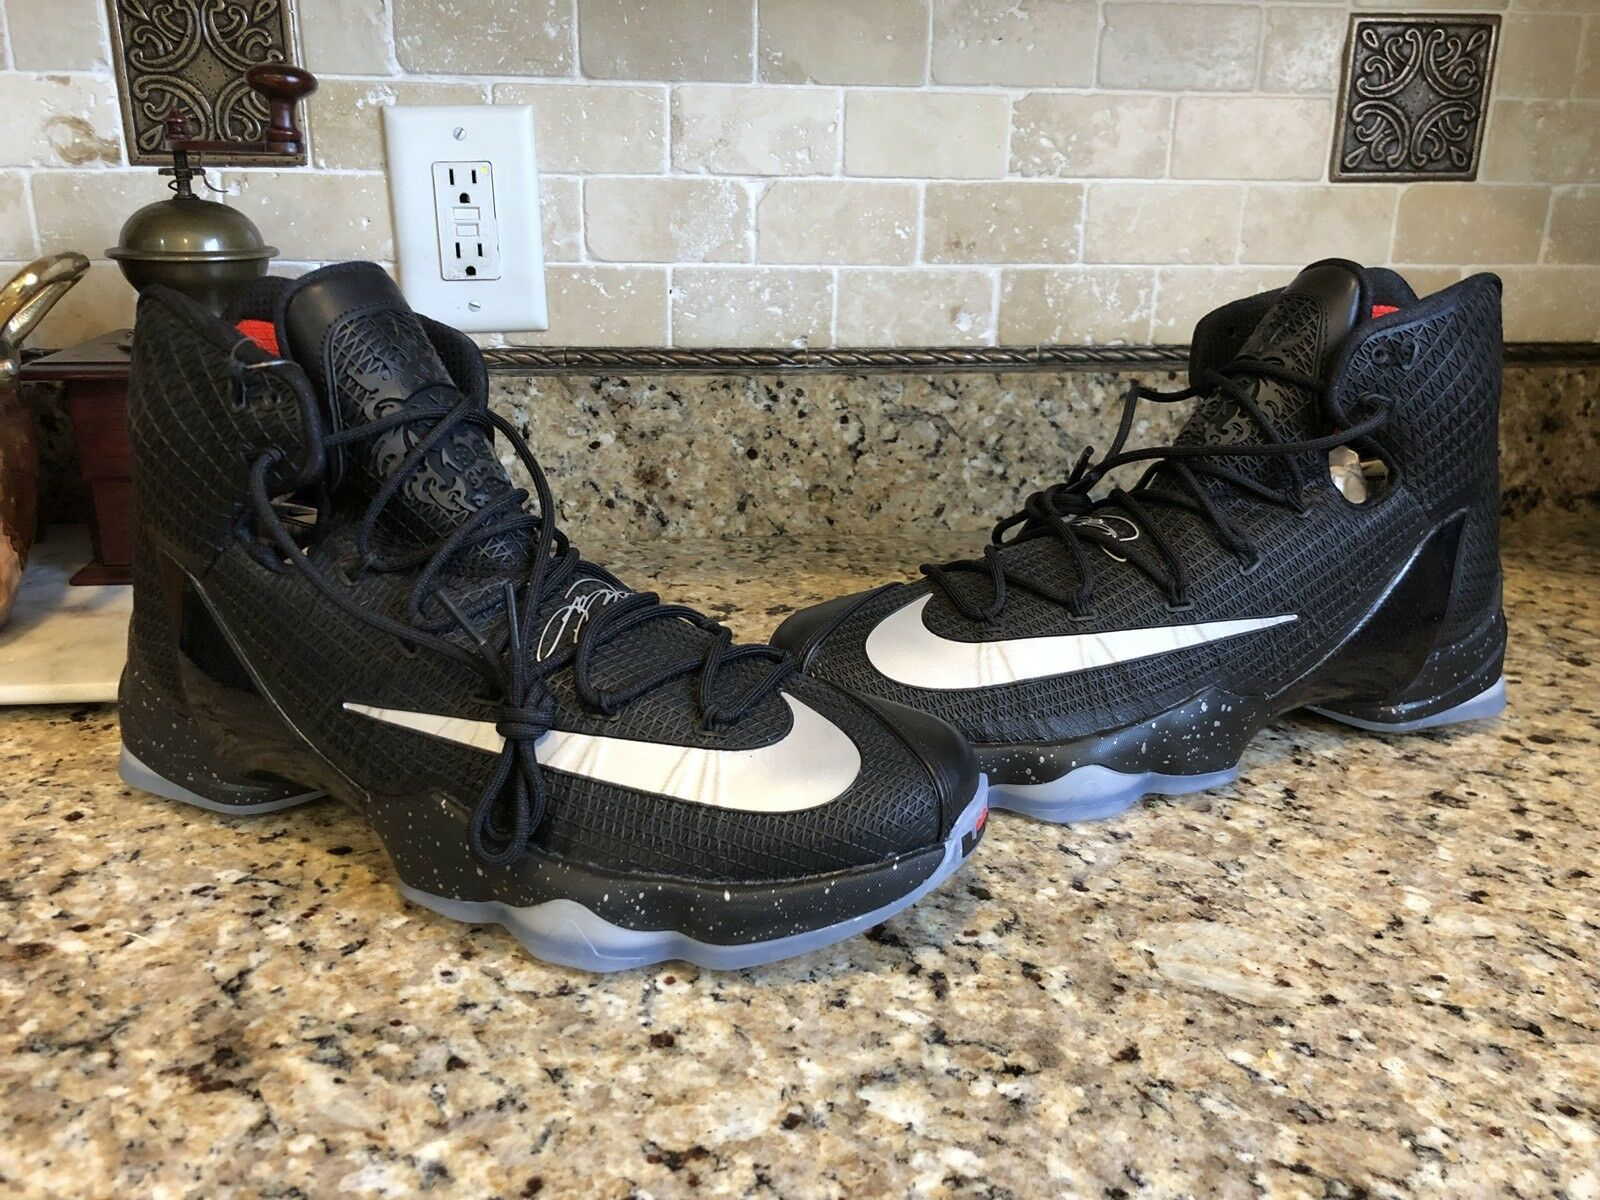 Nike Lebron 13 XIII Black Elite Elite Elite Battle Men's Basketball shoes 14 Finals 15 16 3f2668